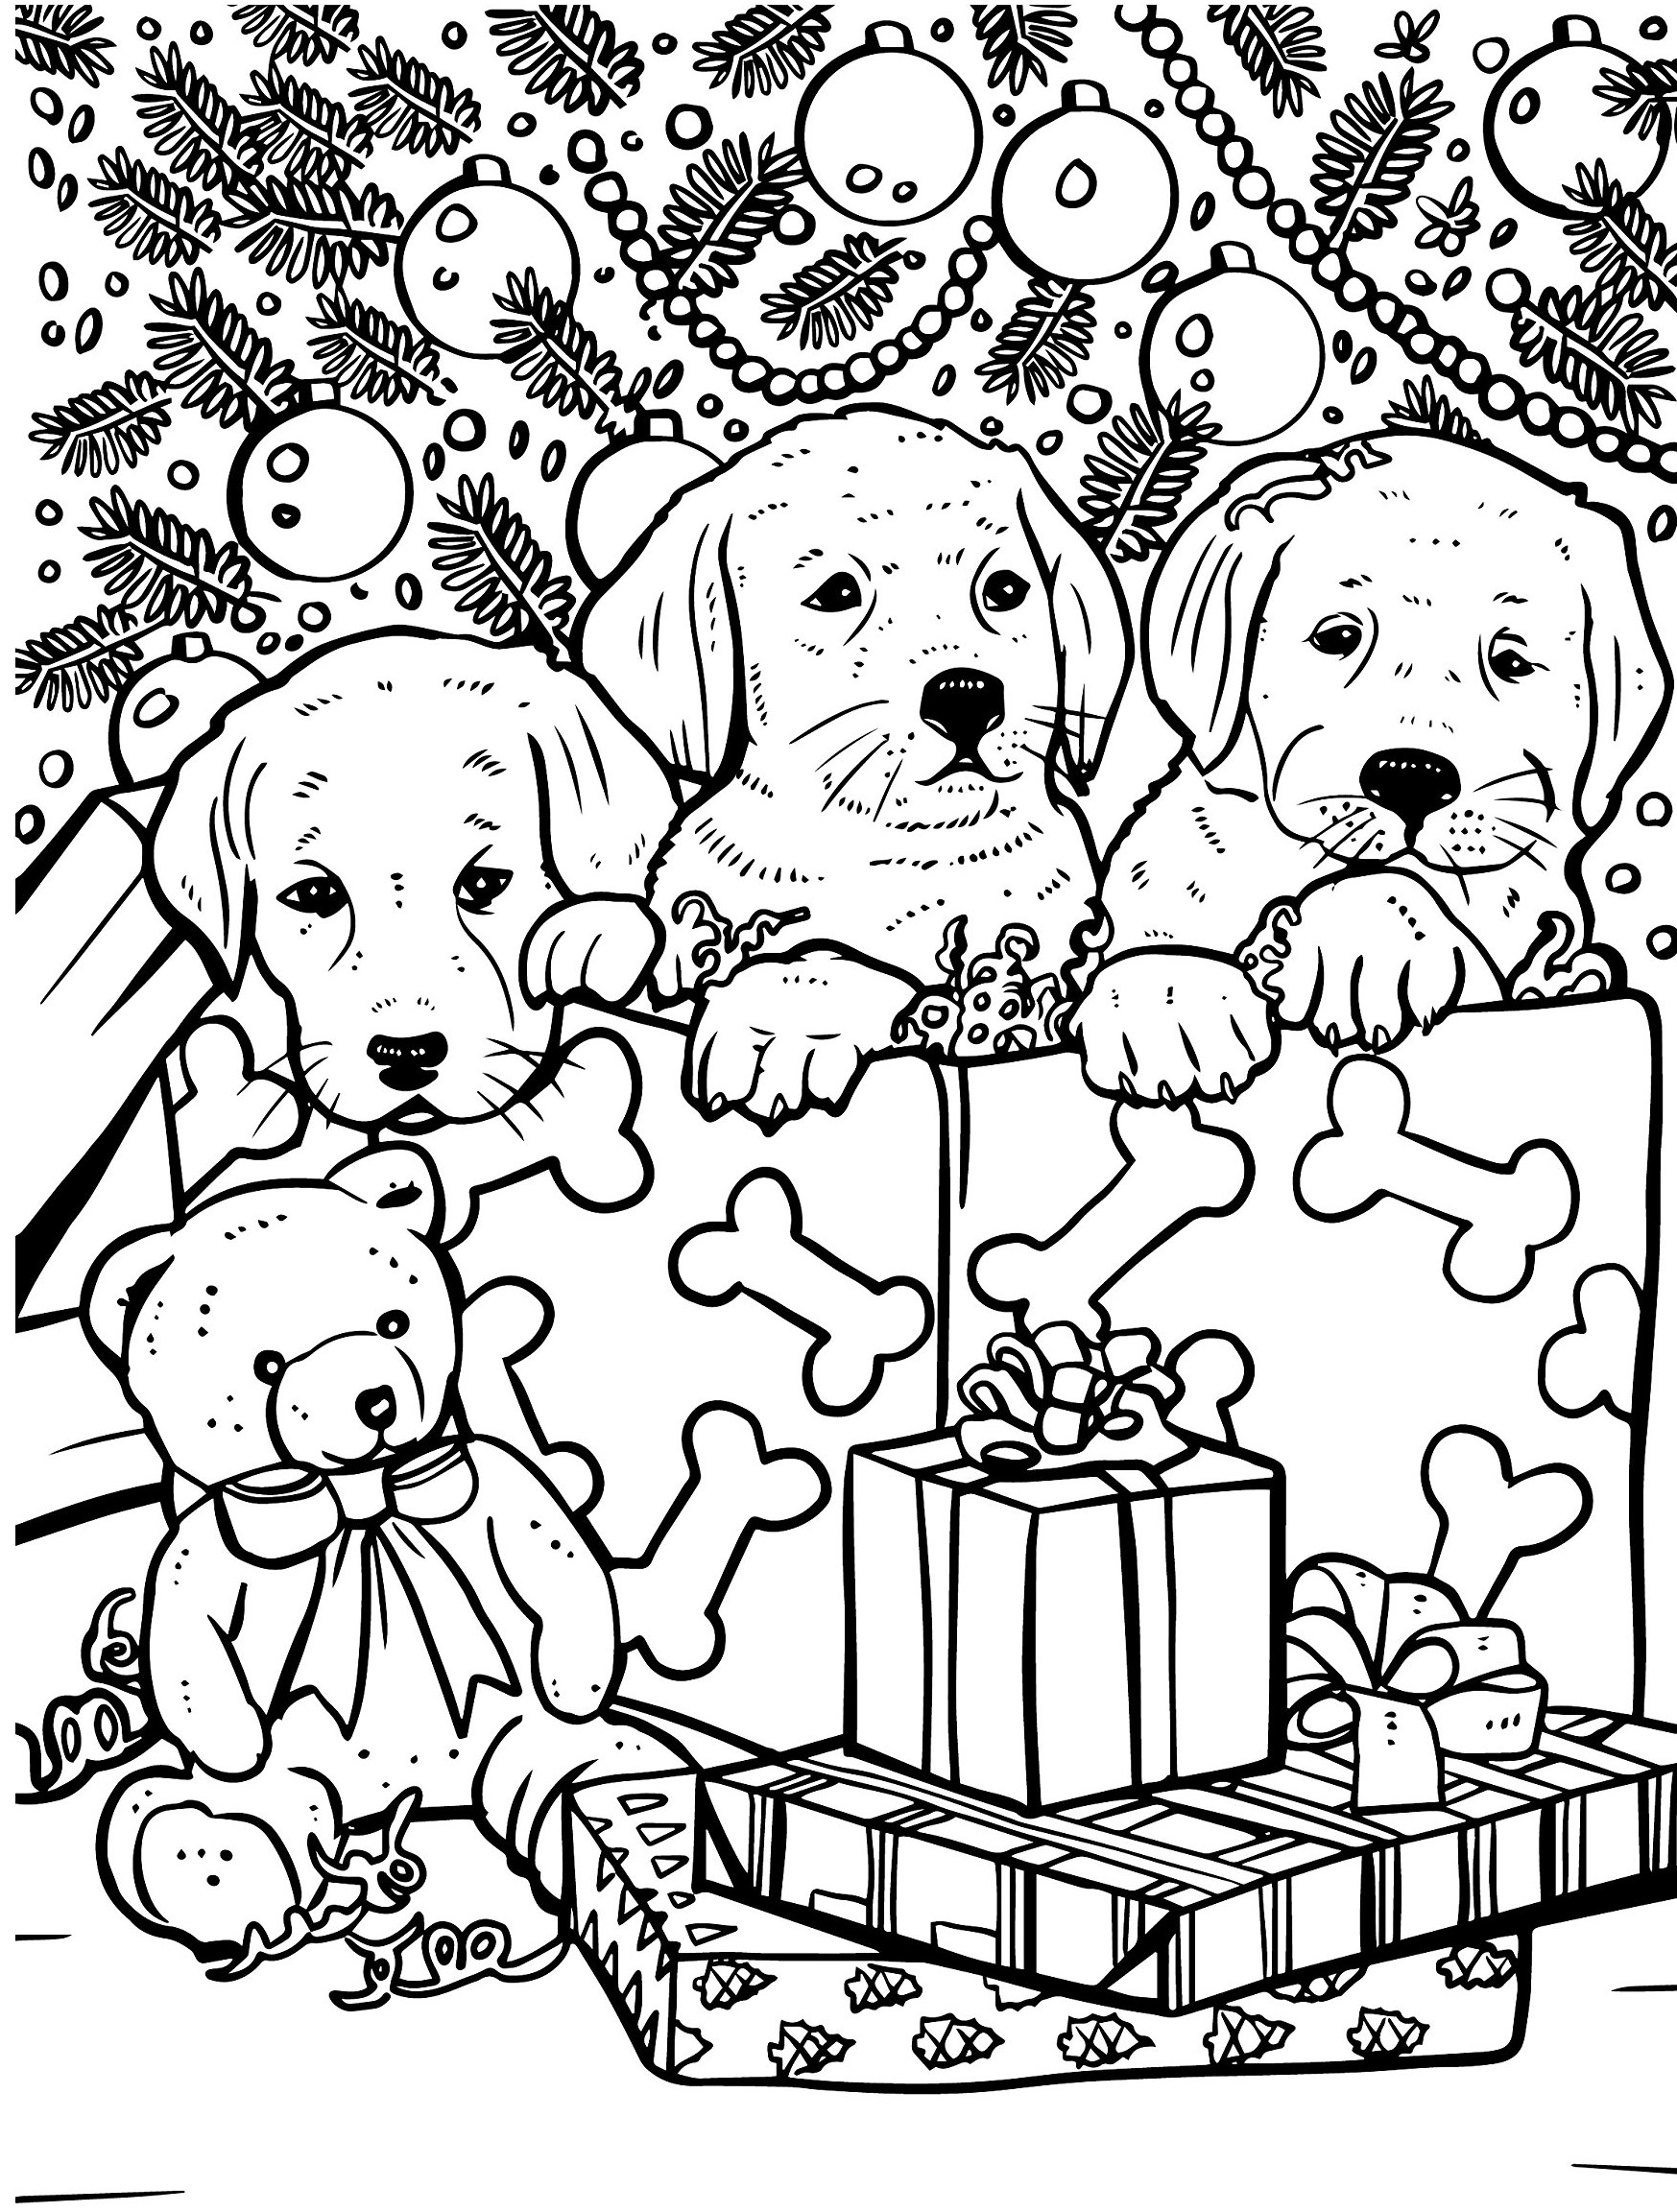 Puppies under the Christmas tree